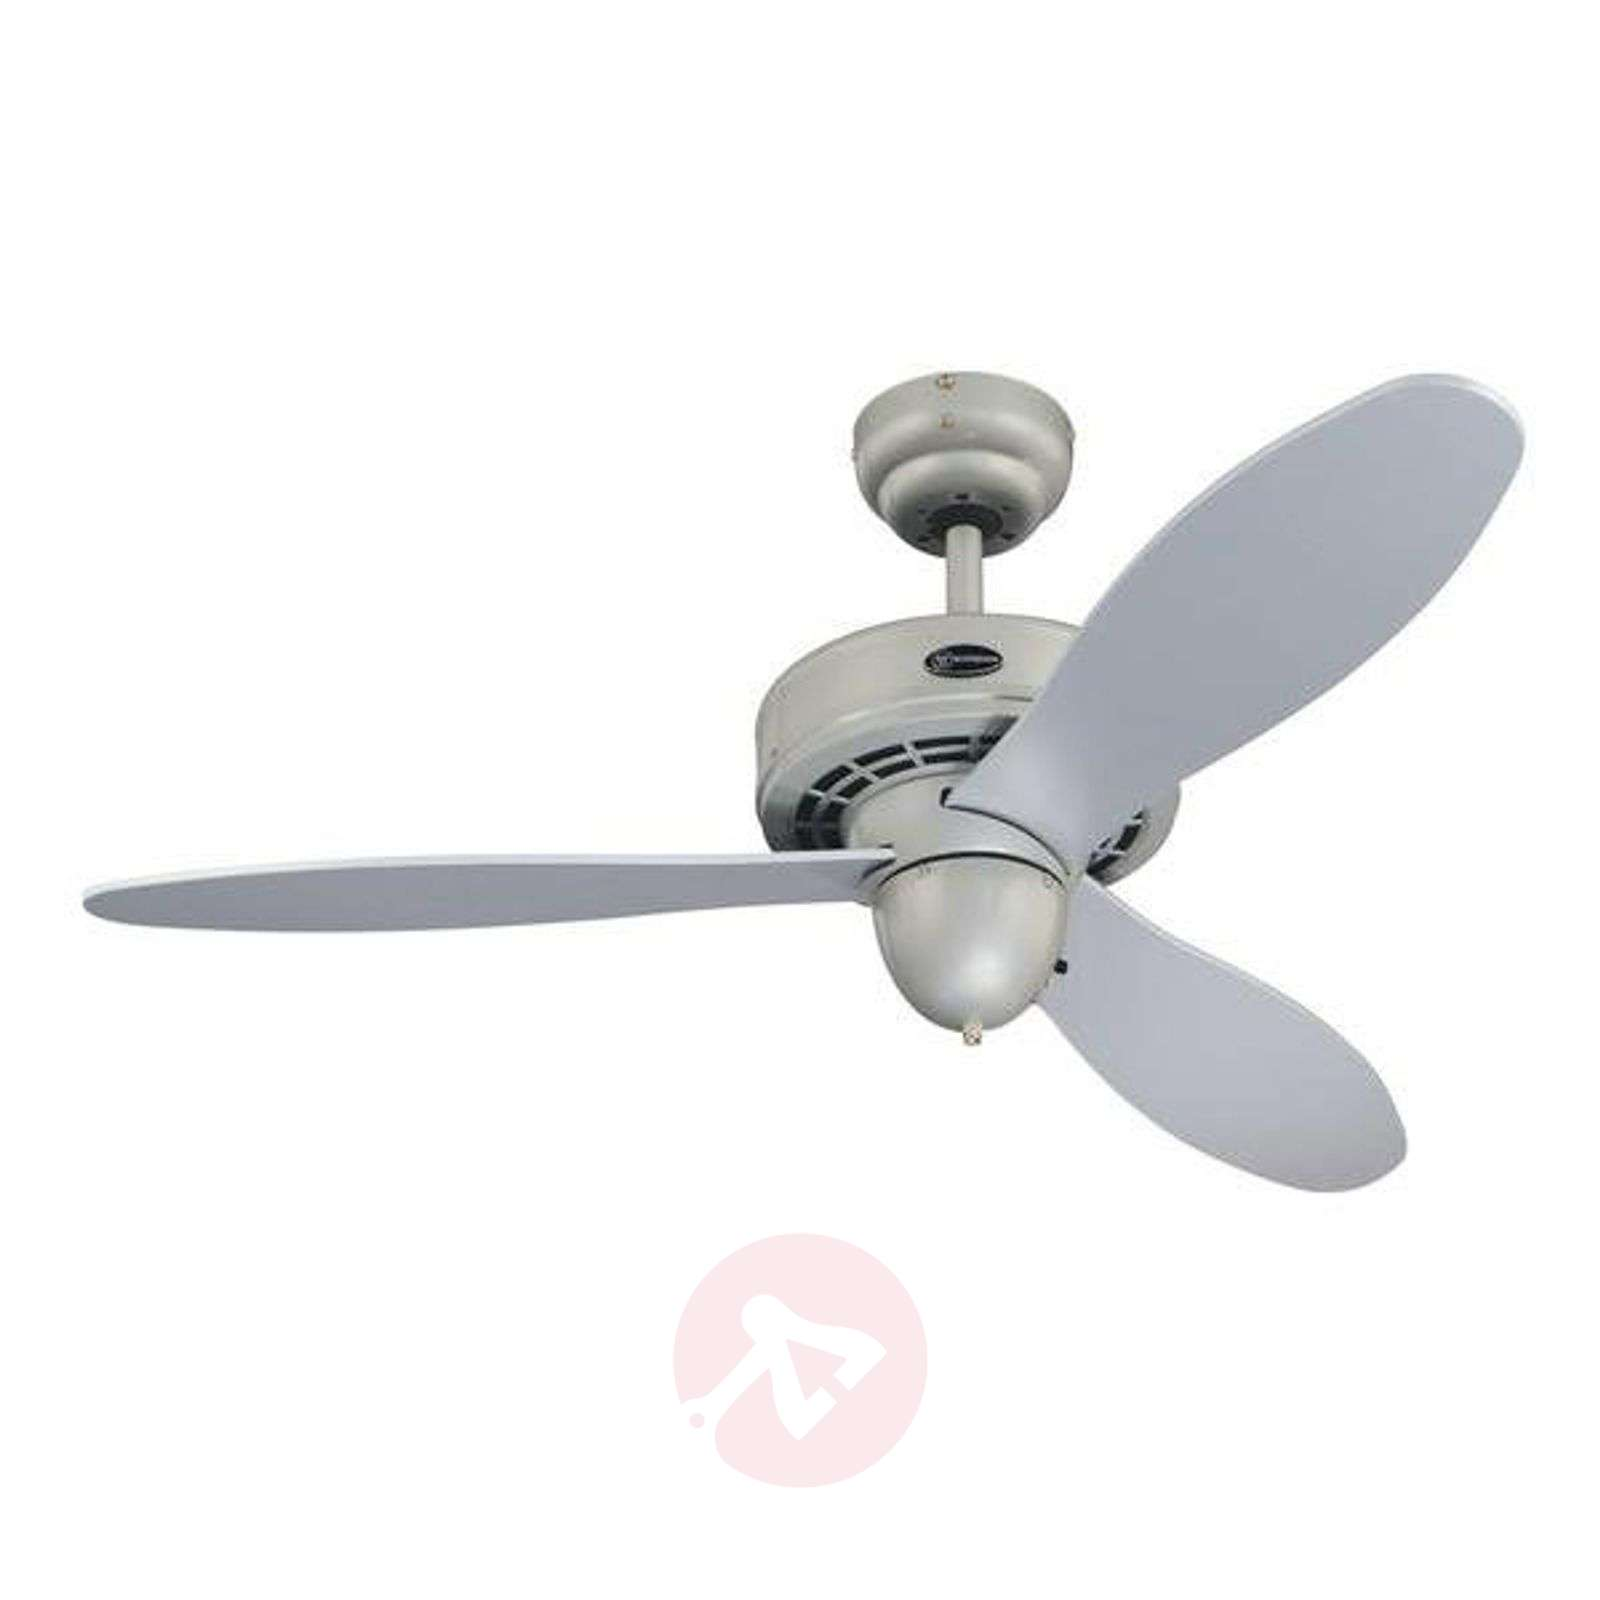 Extremely quiet silver Airplane ceiling fan-9602038-02